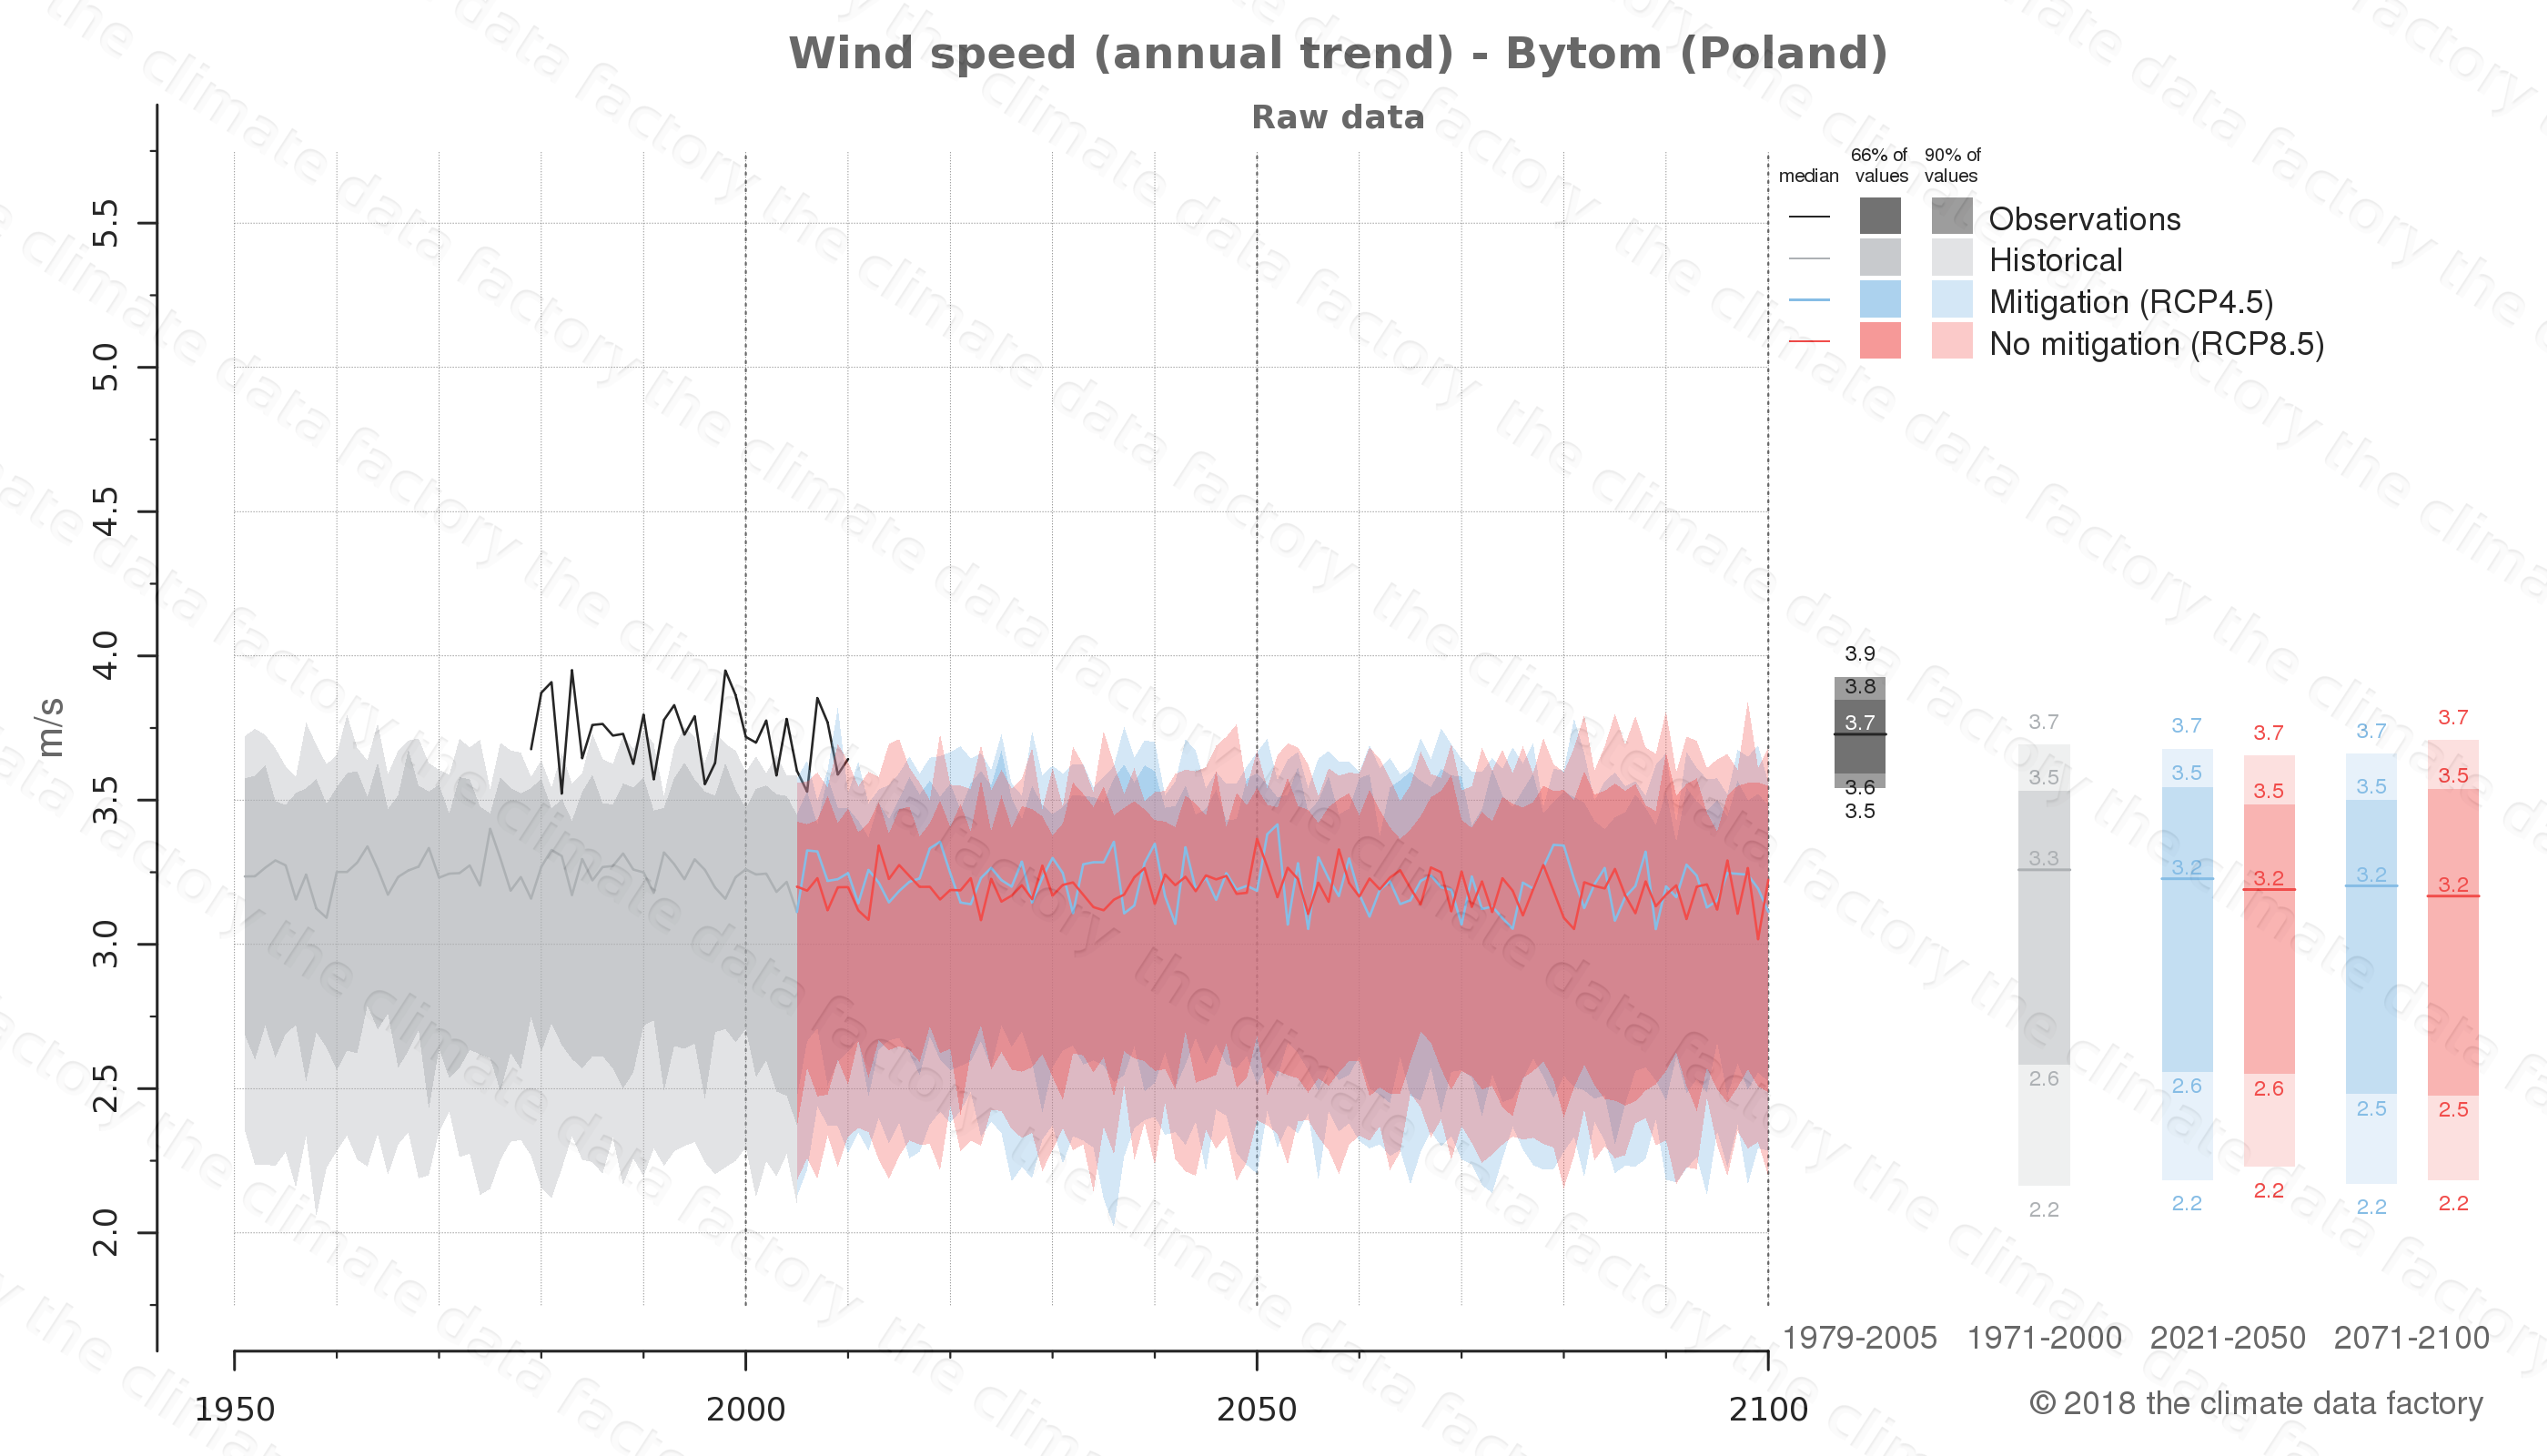 climate change data policy adaptation climate graph city data wind-speed bytom poland